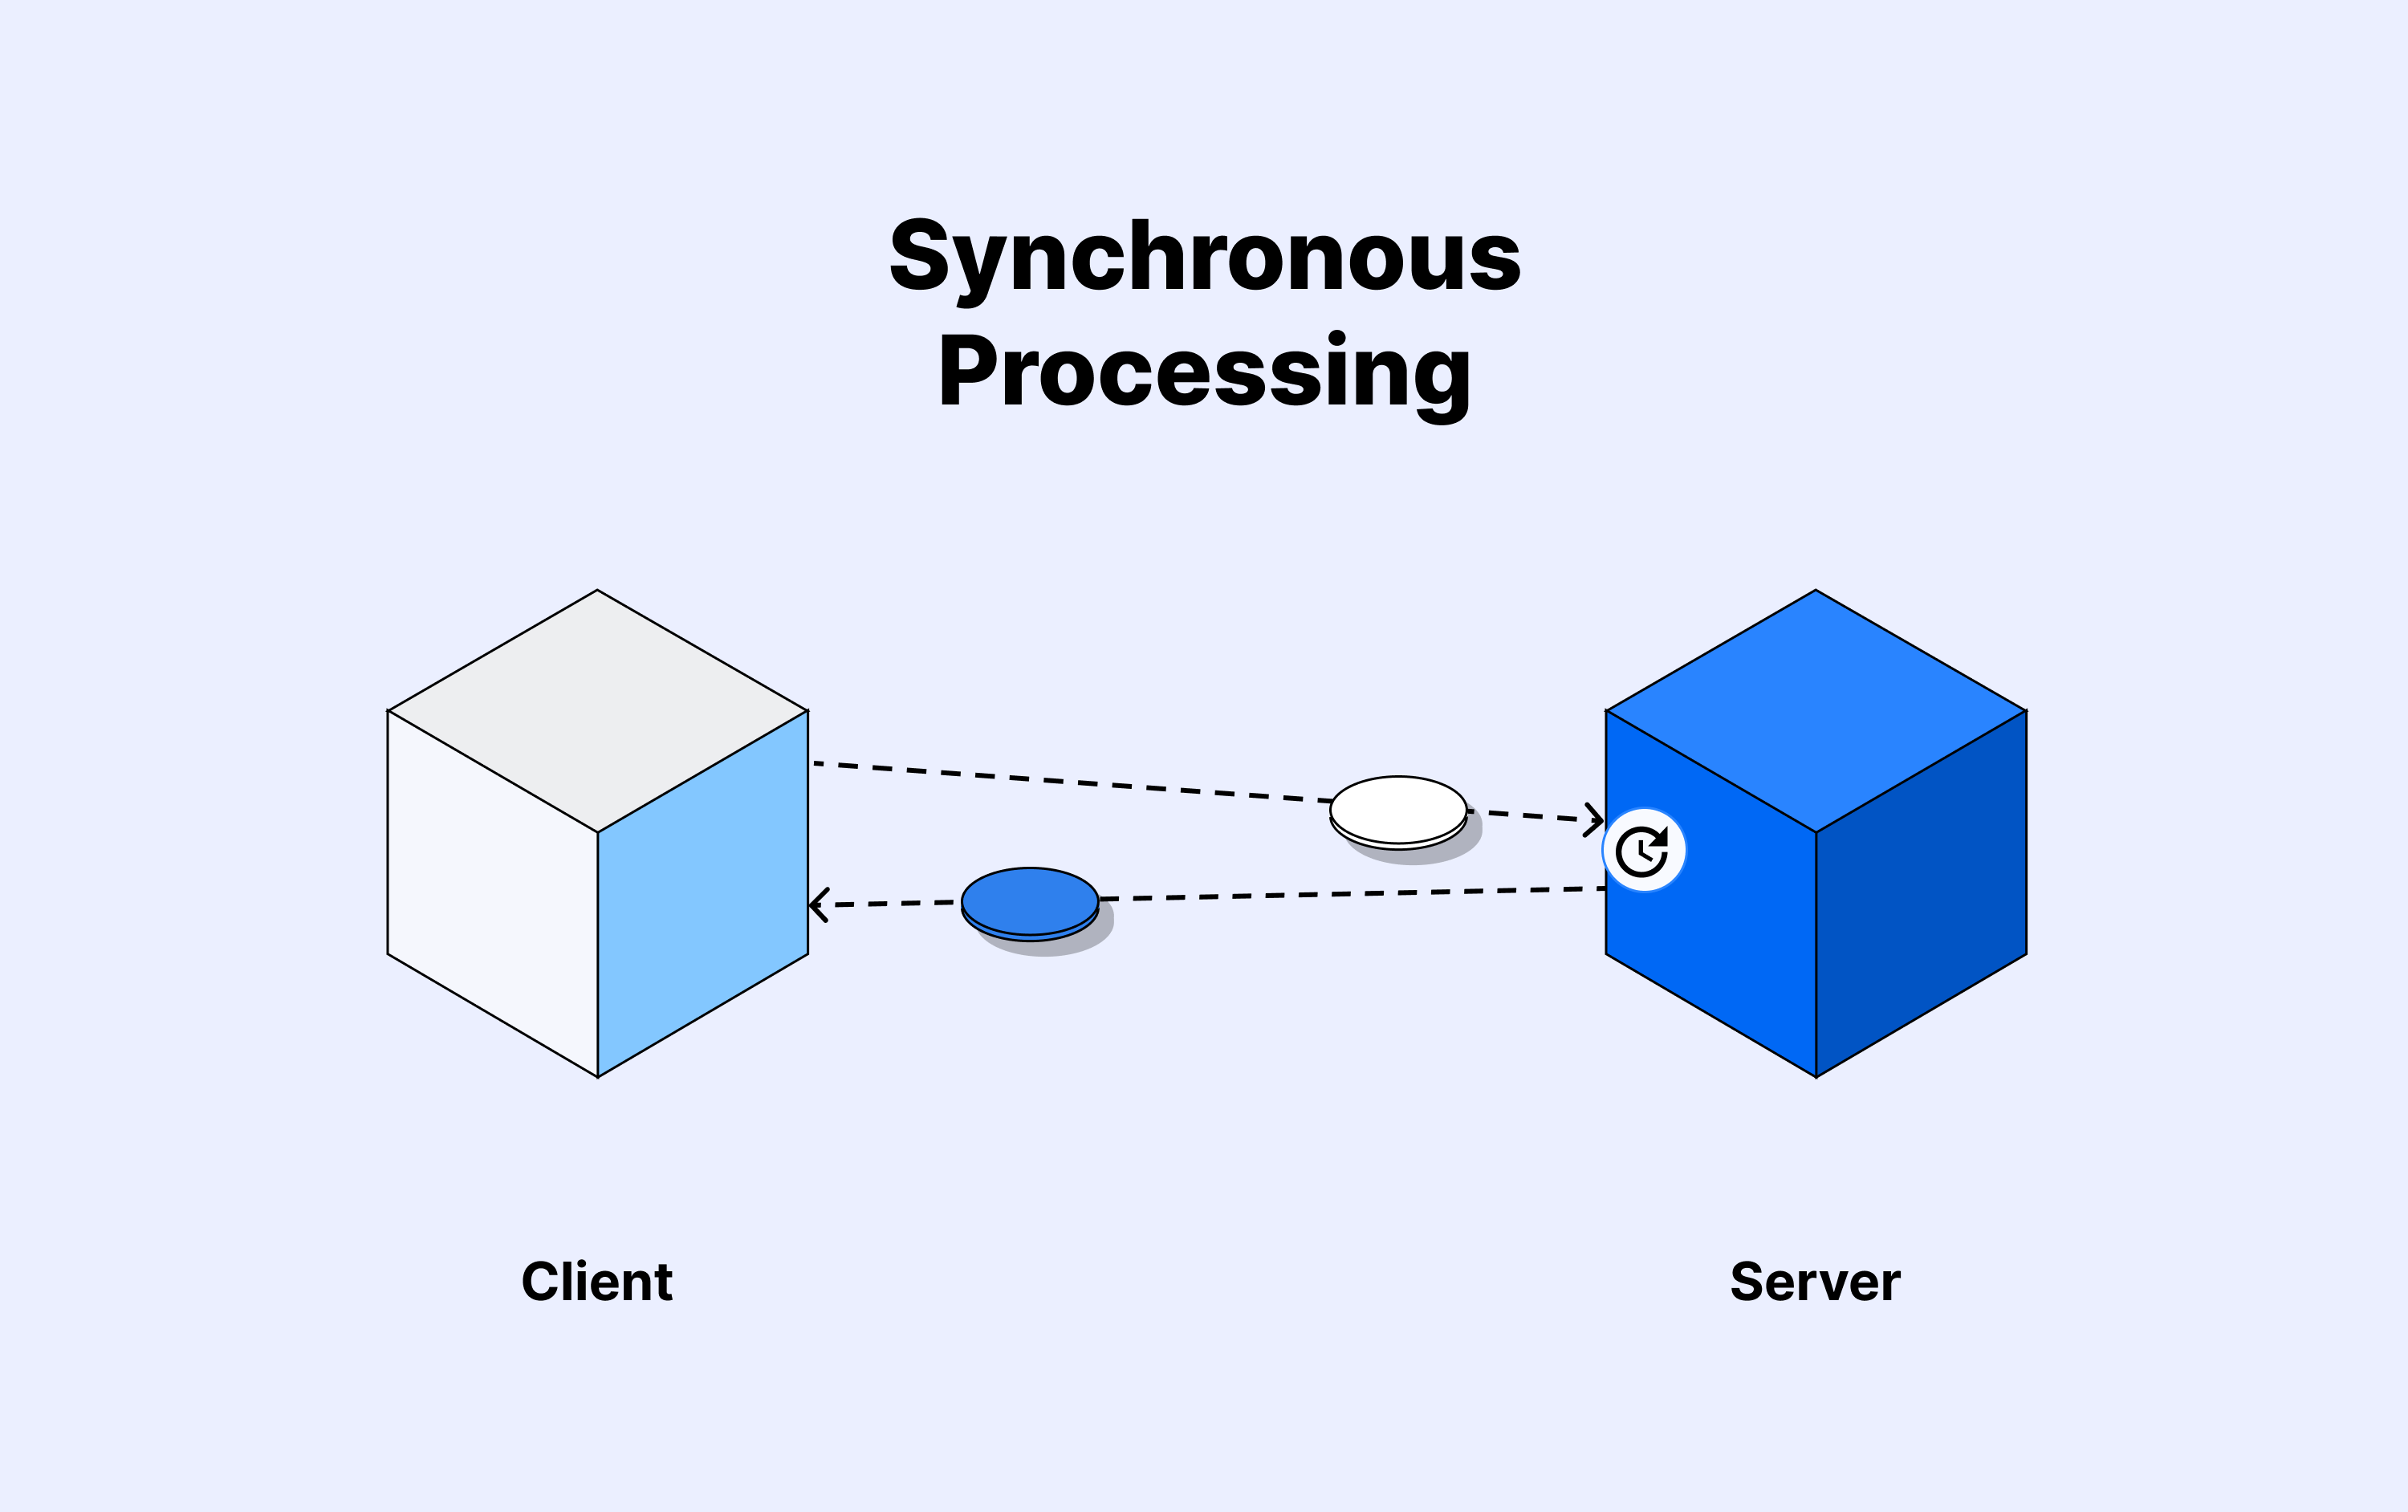 Synchronous communication processing